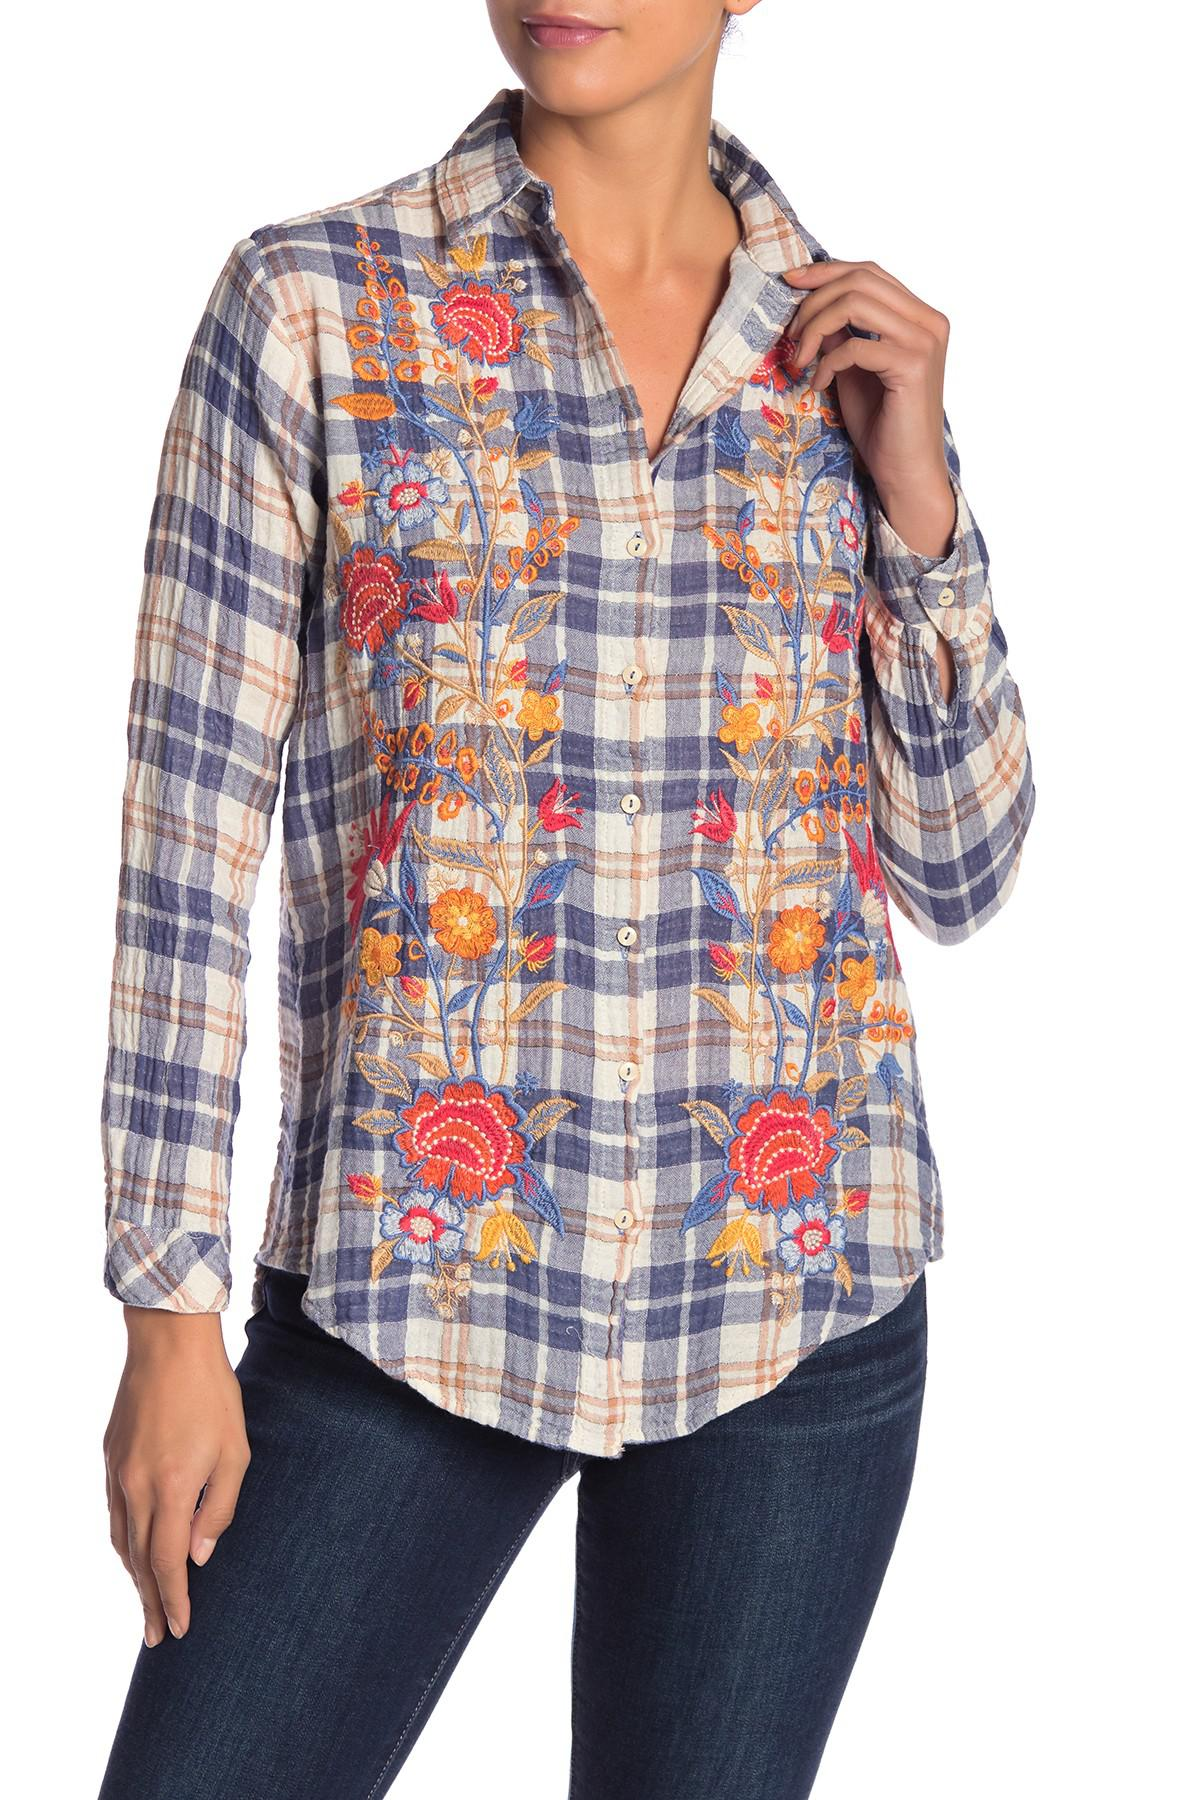 95cb43dafea Lyst - Johnny Was Adira Embroidered Plaid Button Down Shirt in Blue